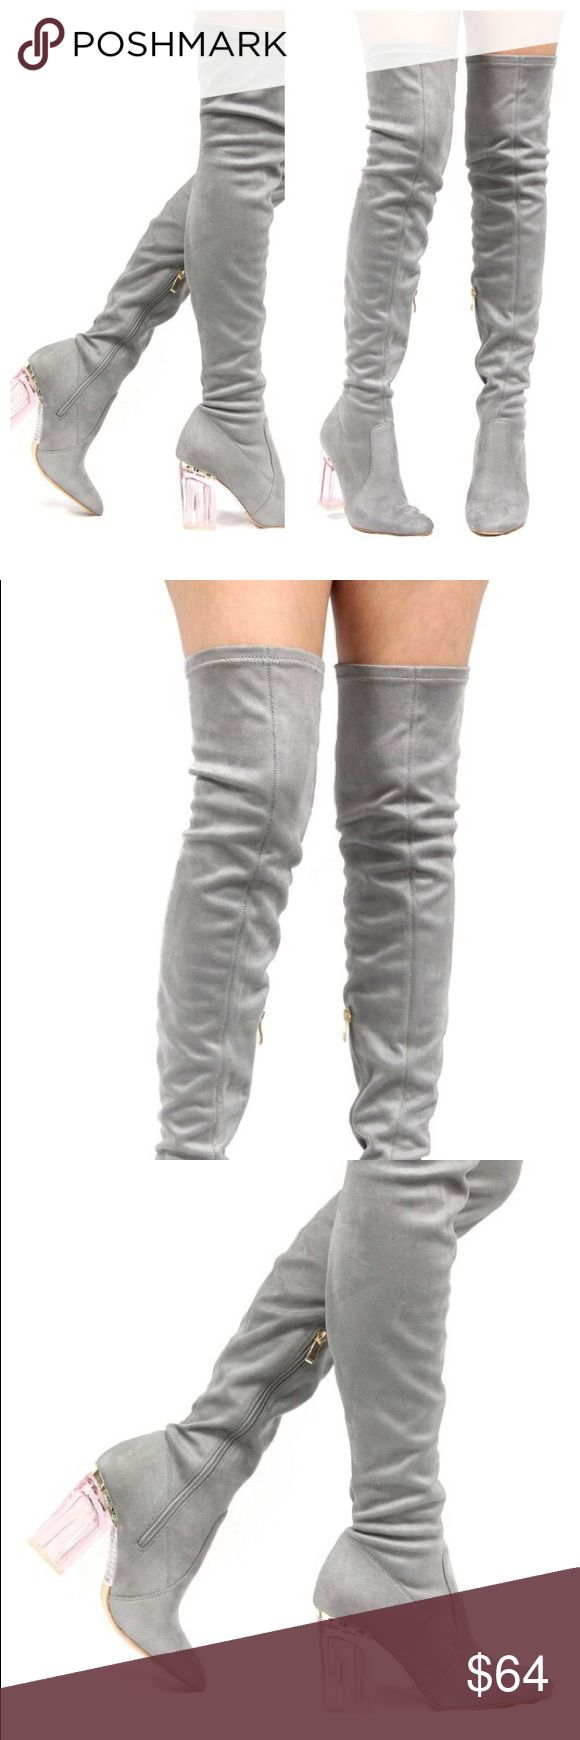 COMING SOON Knee High Faux Suede Gray Lucite Boots LIKE INTERESTED. BUY NOW TO PRE-ORDER ( I WILL ONLY BRING ONE SIZE OF EACH) These boots are super trending right now. They were first seeing in Dior Runway show. Knee High suede boots with lucite heels. Wear over your black leggings with an oversize sweater and you are a Magical Unicorn 🦄 . Pre-orders will take about 5 days to ship. ClosetBlues HighFash Shoes Over the Knee Boots